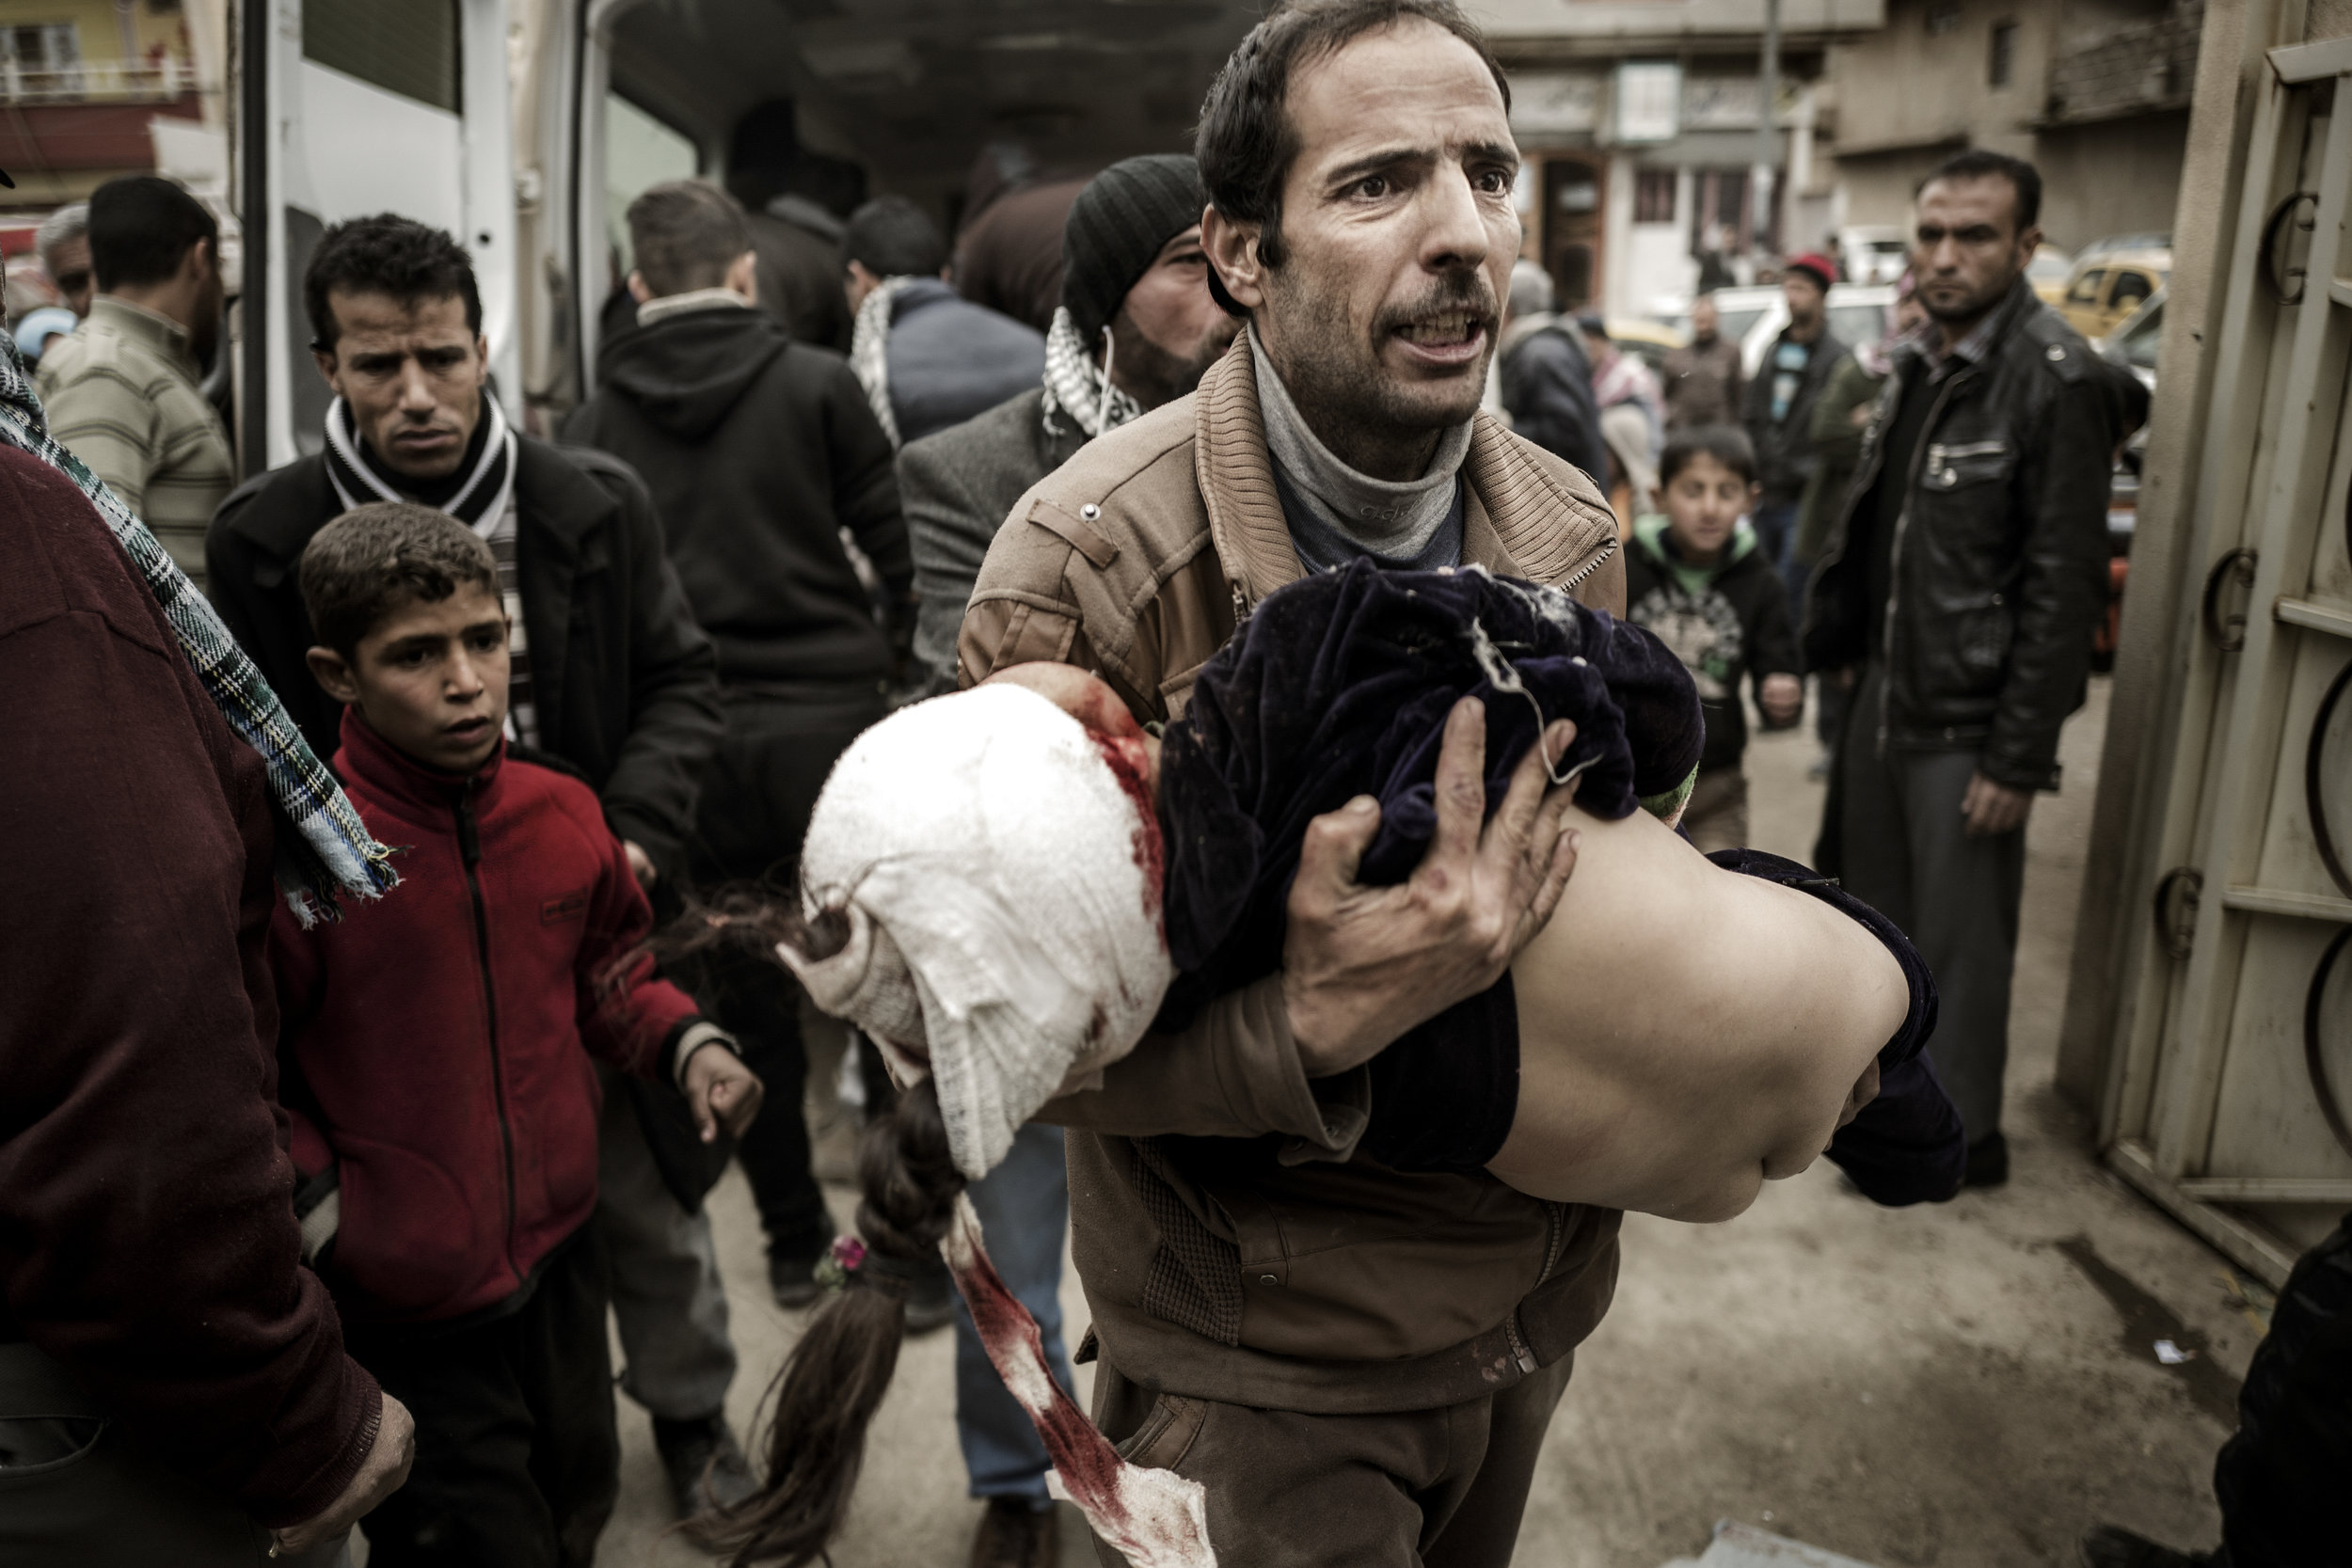 Mohammad jumps out of one of the two ambulances filled with wounded children, that has just pulled up in front of the field hospital. He's carrying his daughter Ghufran in his arms. Half an hour earlier the ten year old girl was playing with her siblings and friends in the family's home in the northern part of Mosul, when a mortar struck the building. Ghufran's heart stops several times, while the doctors work on her, but they manage to resurrect the little girl. They get her patched up and load her on an ambulance, that drives towards a real hospital outside Mosul. But Ghufran dies before they get there.